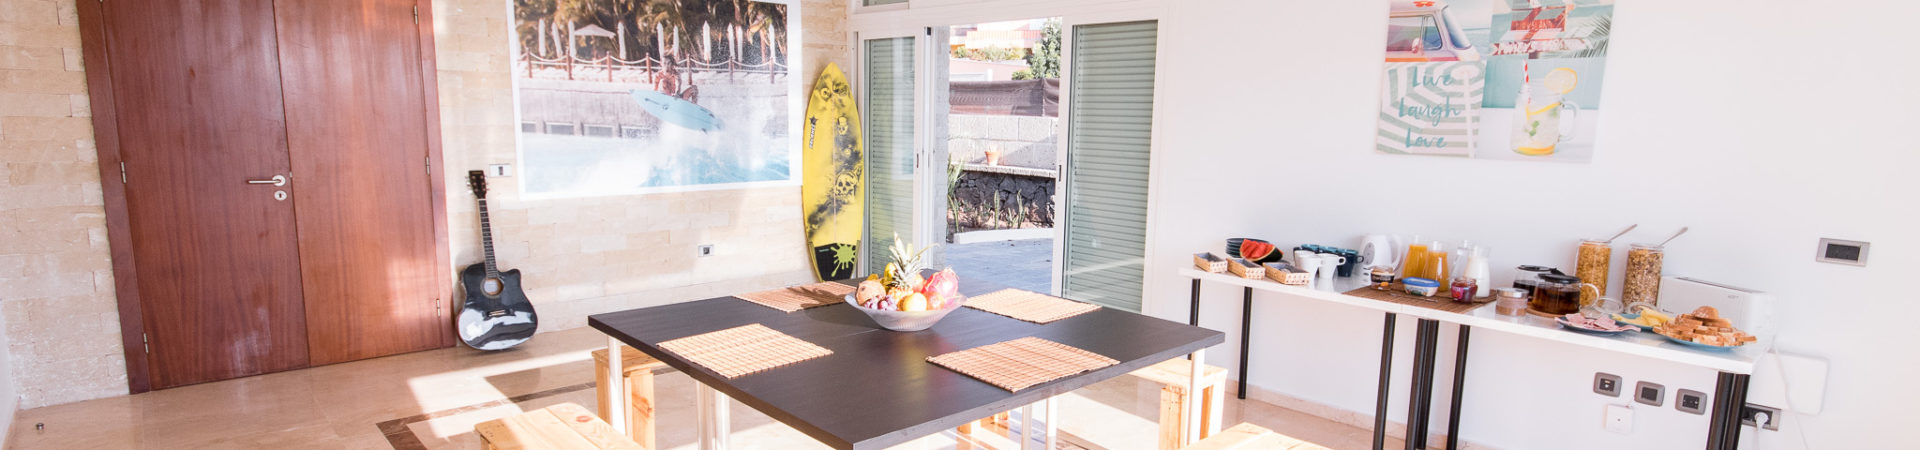 tenerife surf camp room booking